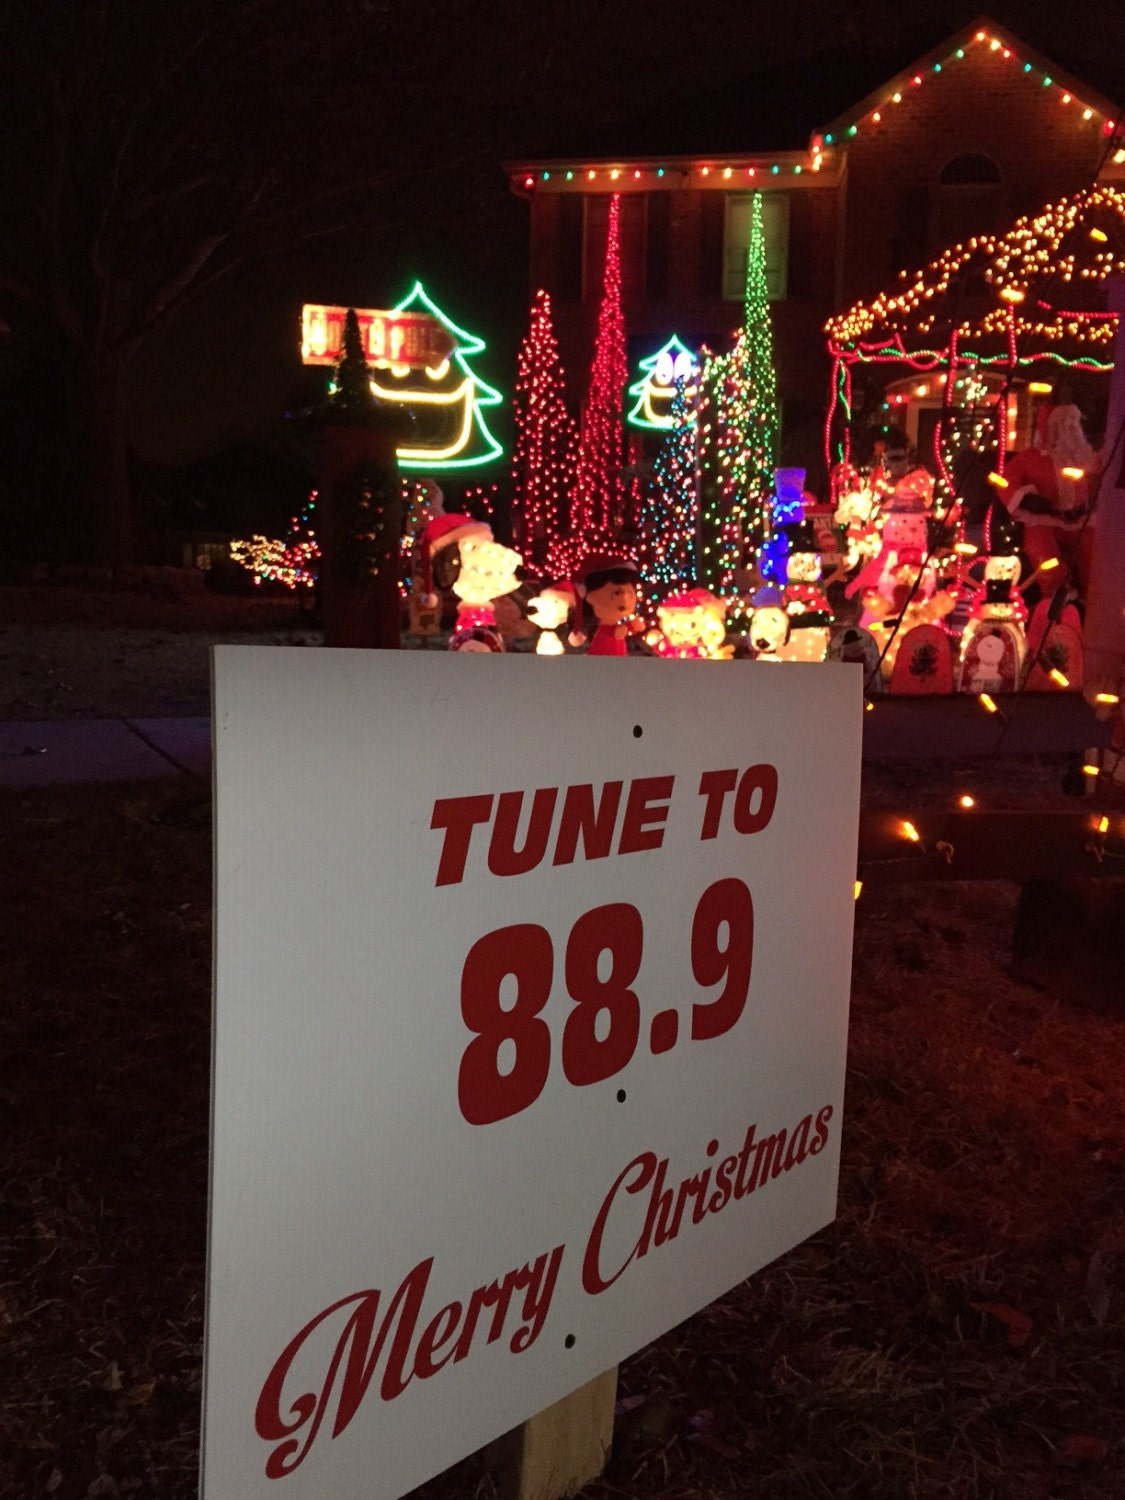 Christmas Decoration Sign, Tune to radio Sign for Holiday Light Show